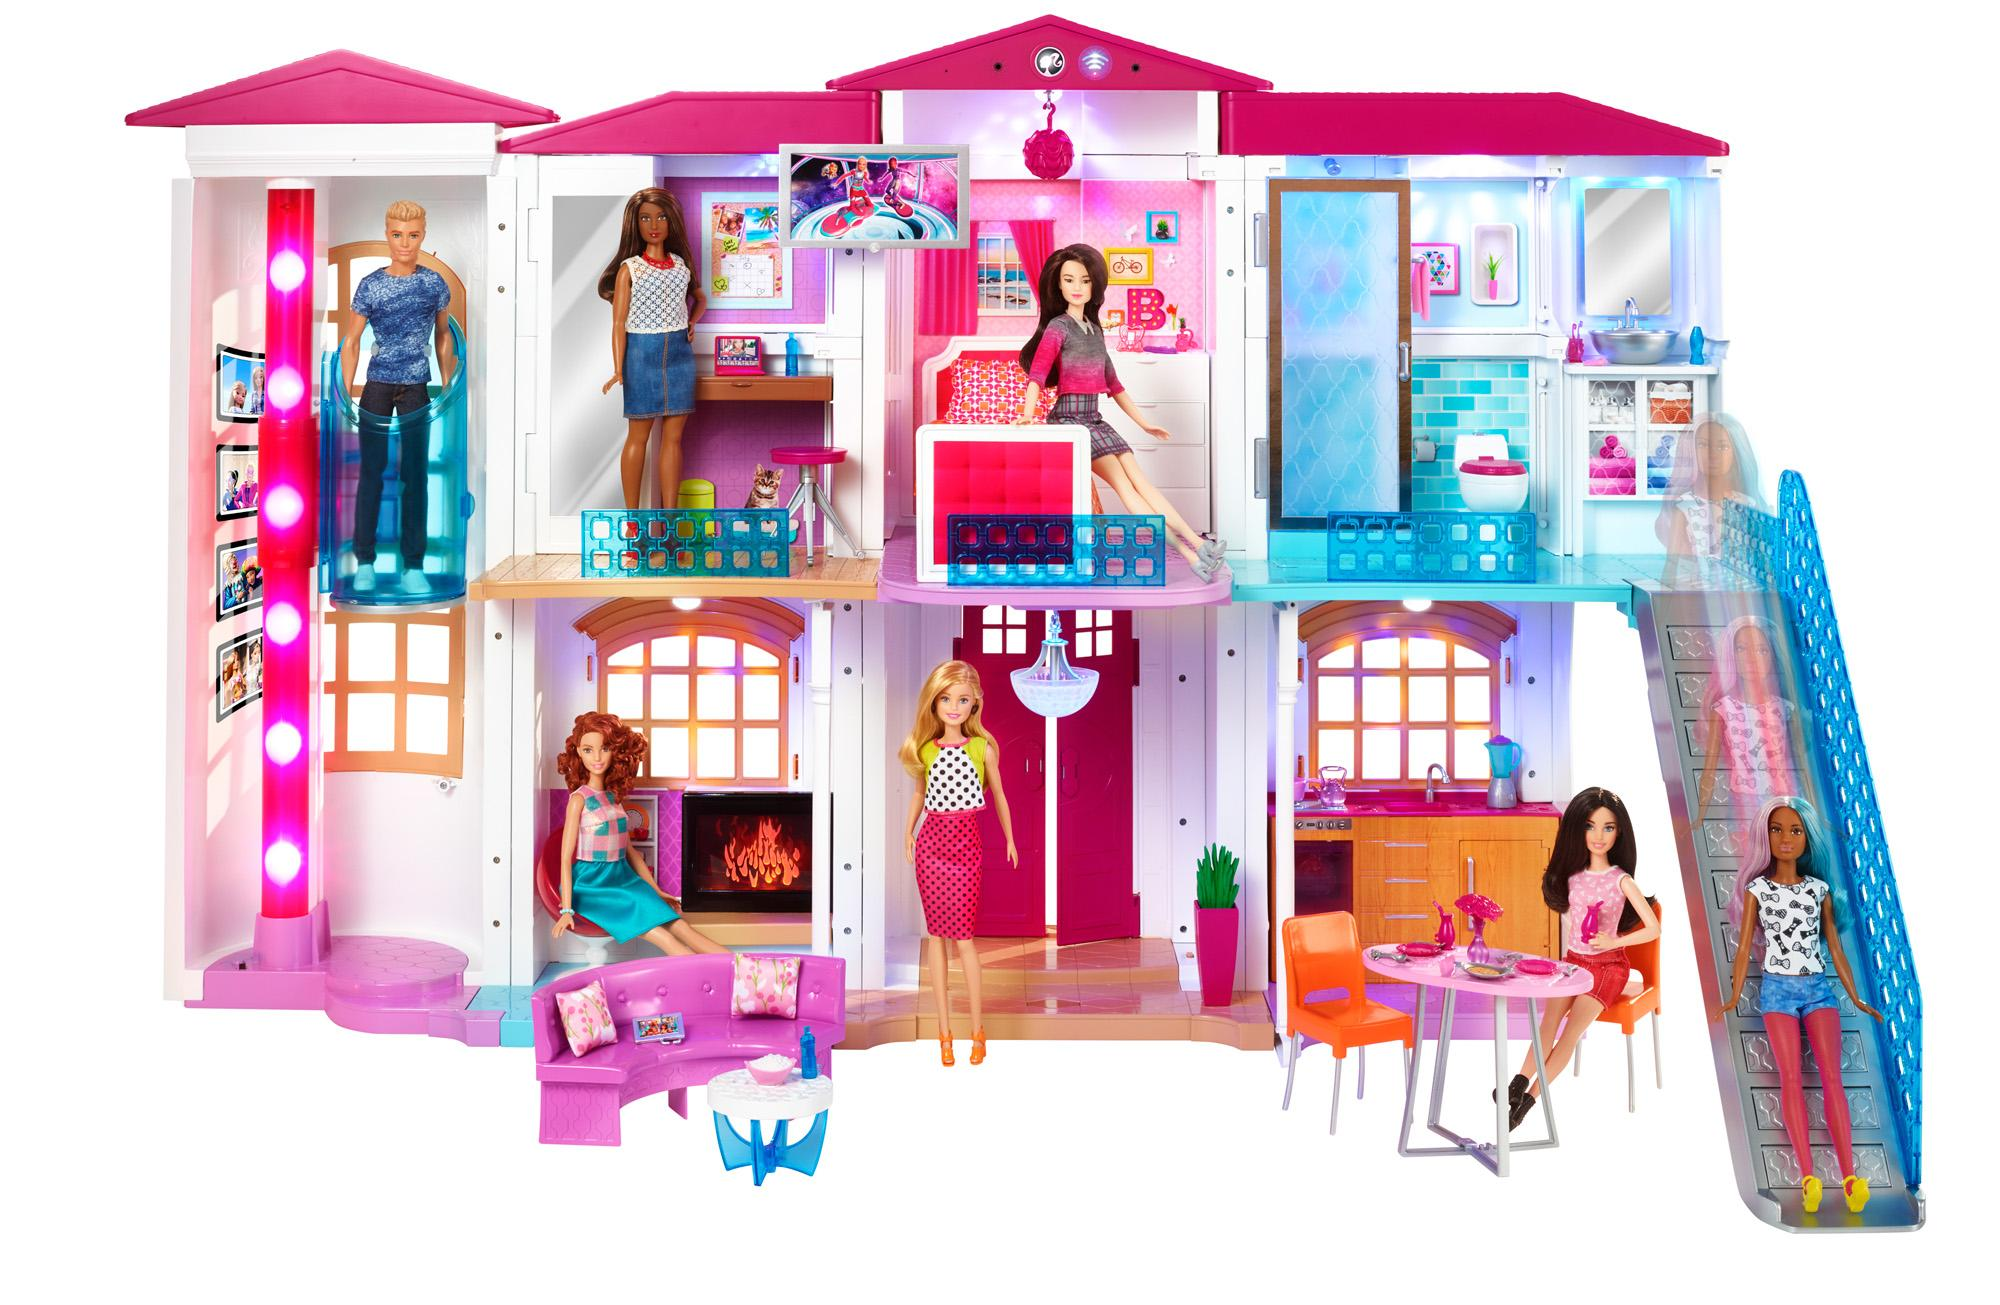 55cd2db9 05f6 4961 b8bc 77e8c9f5c1ff._CB280139731__SR970300_ amazon com barbie hello dreamhouse toys & games Barbie Dreamhouse at bayanpartner.co